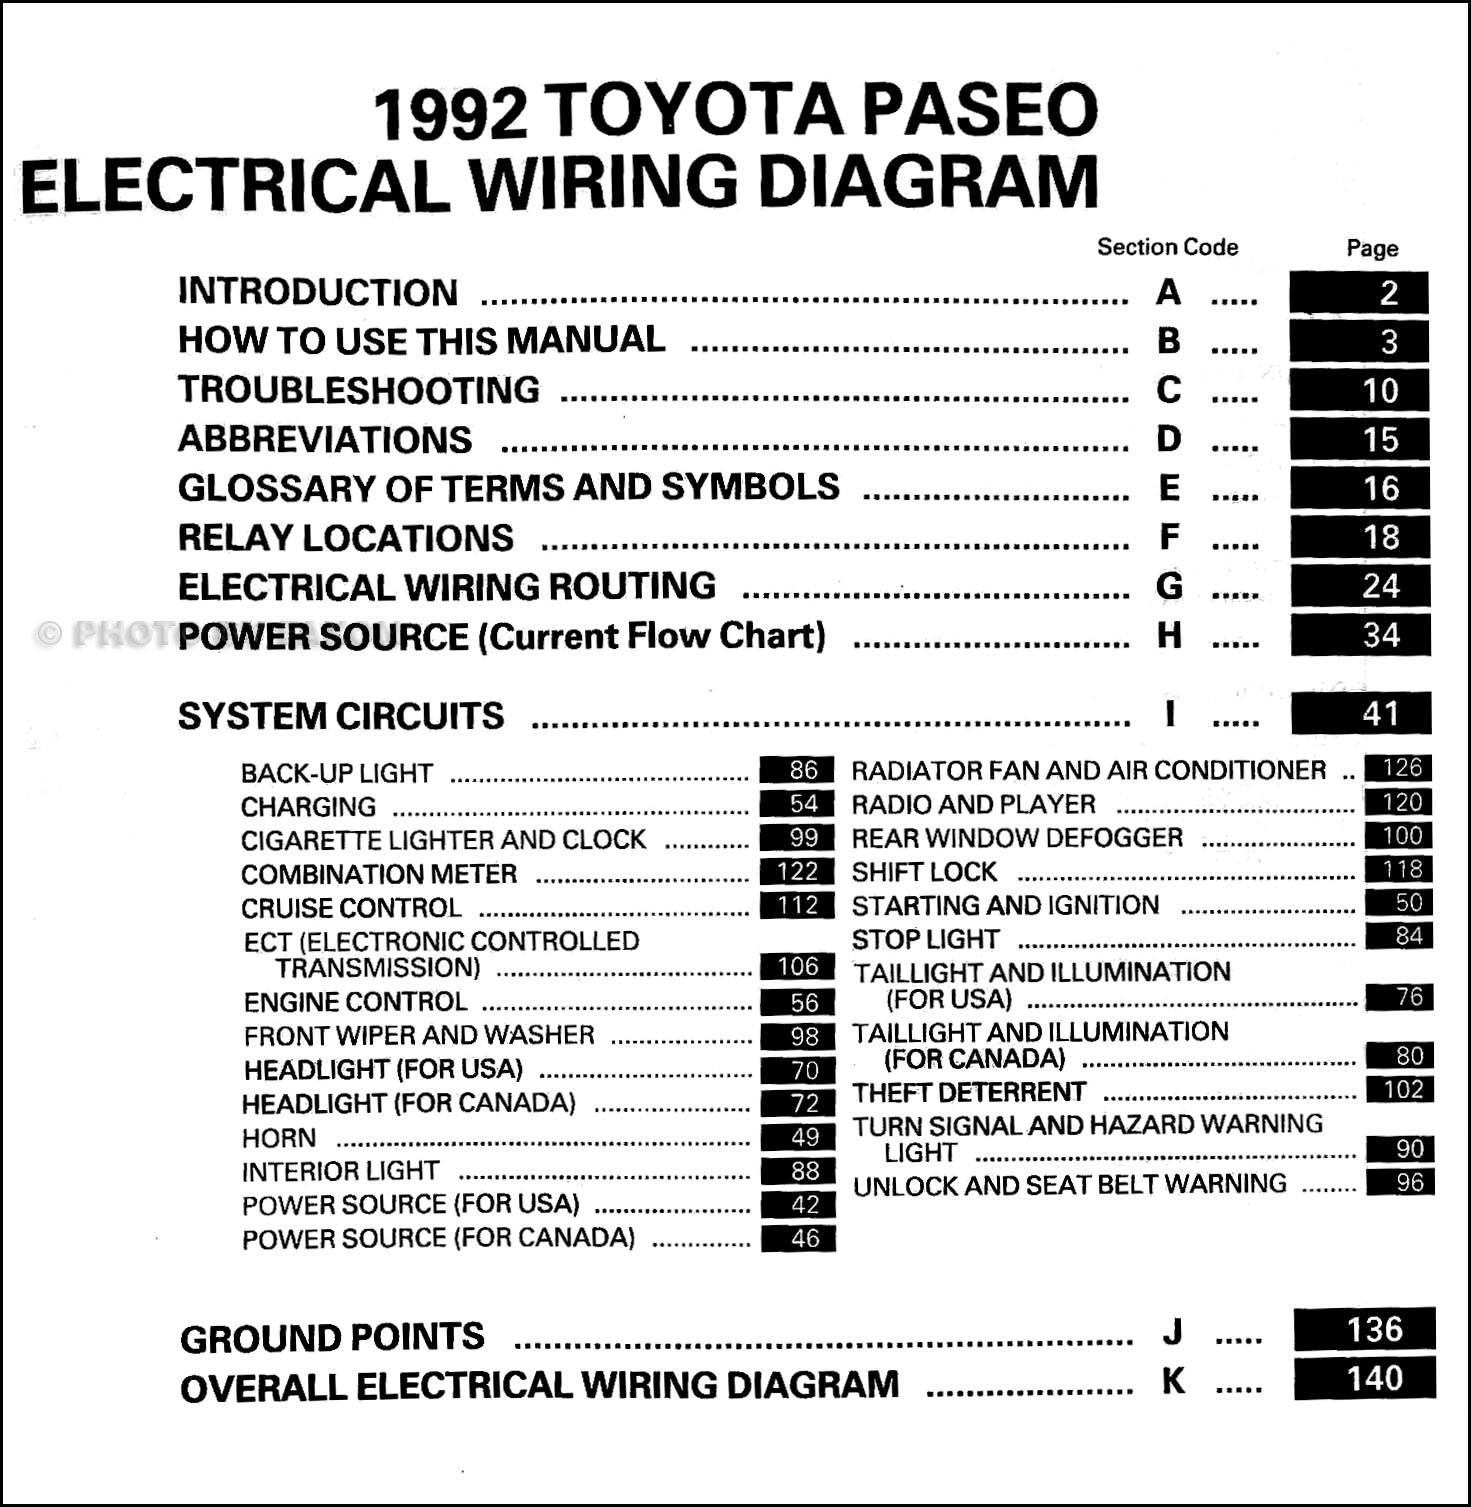 1992ToyotaPaseoOWD TOC 1992 toyota paseo wiring diagram manual original 1993 toyota paseo stereo wiring diagram at gsmportal.co